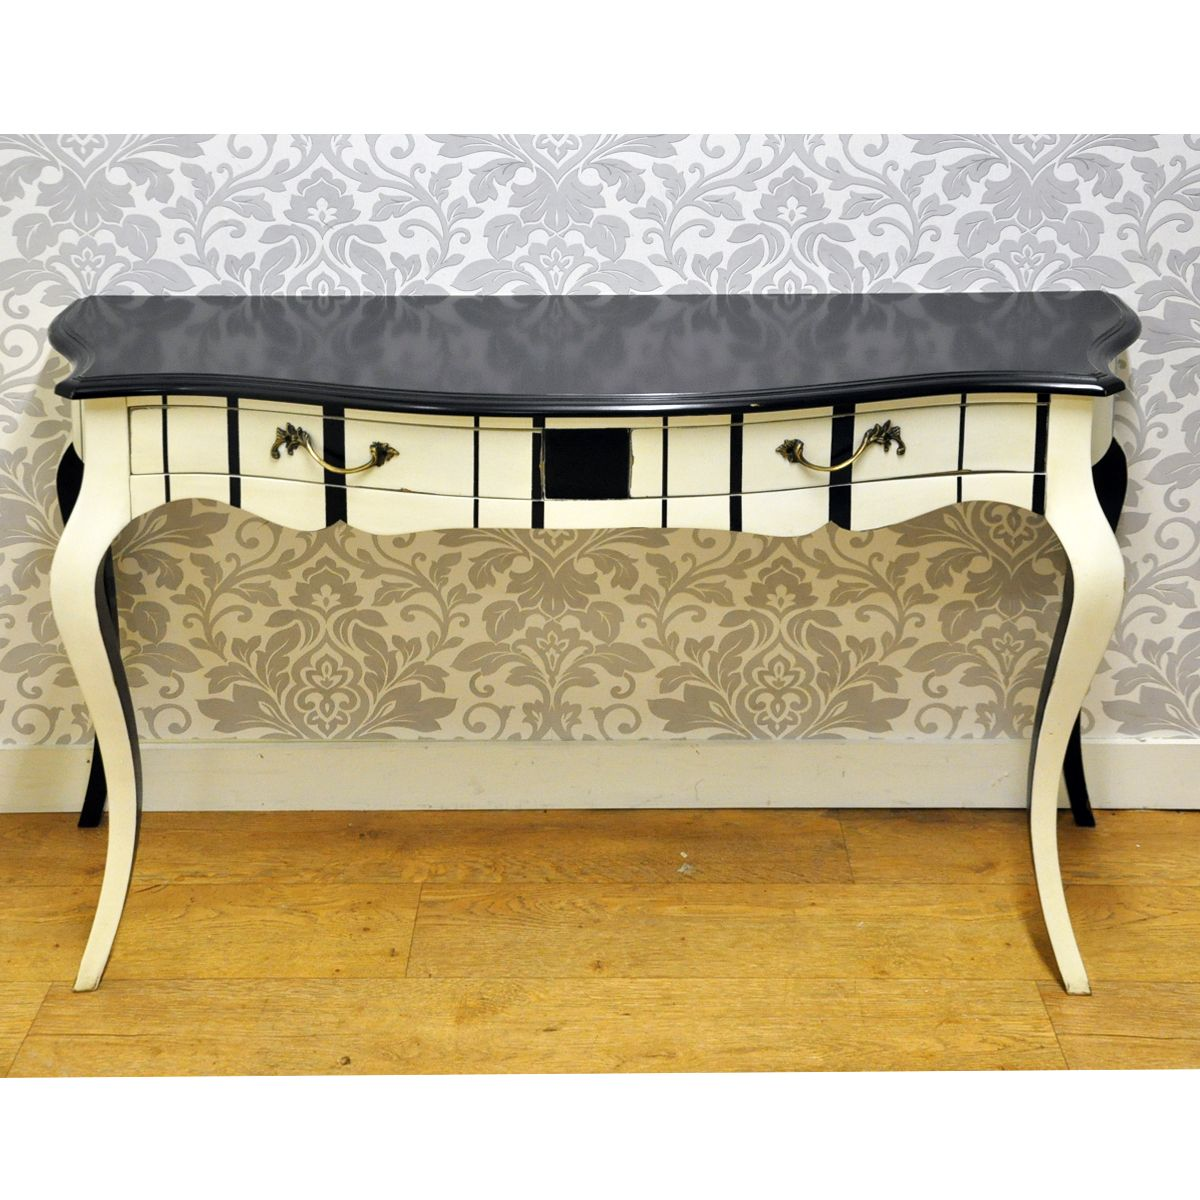 Black & Cream Stripe Painted Hall Console Table | funky hand ...